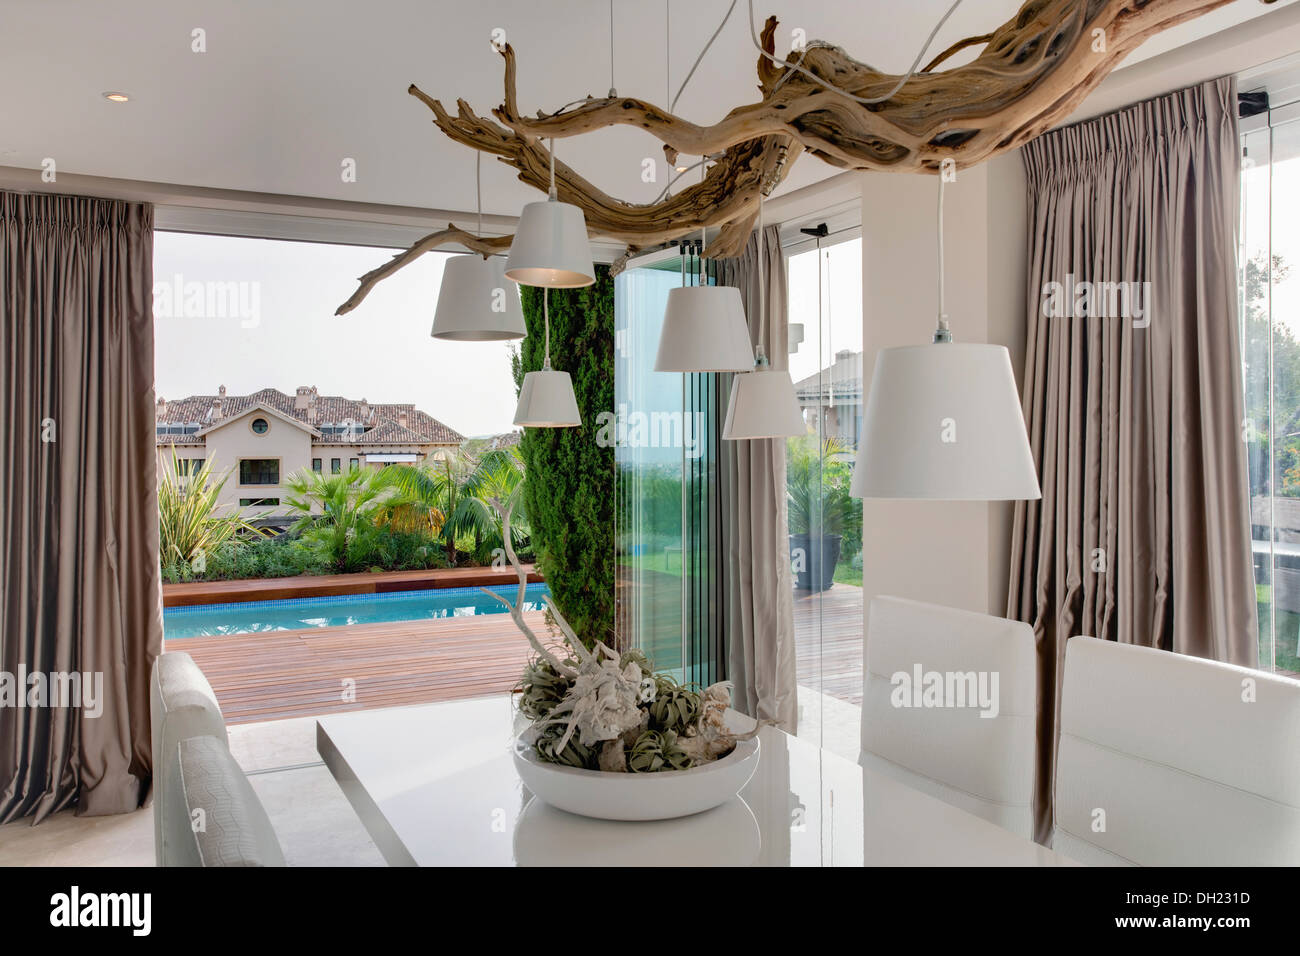 White Lampshades Hanging From Rustic Tree Branch Above Table In Modern Spanish Dining Room With Gray Silk Drapes On Glass Doors